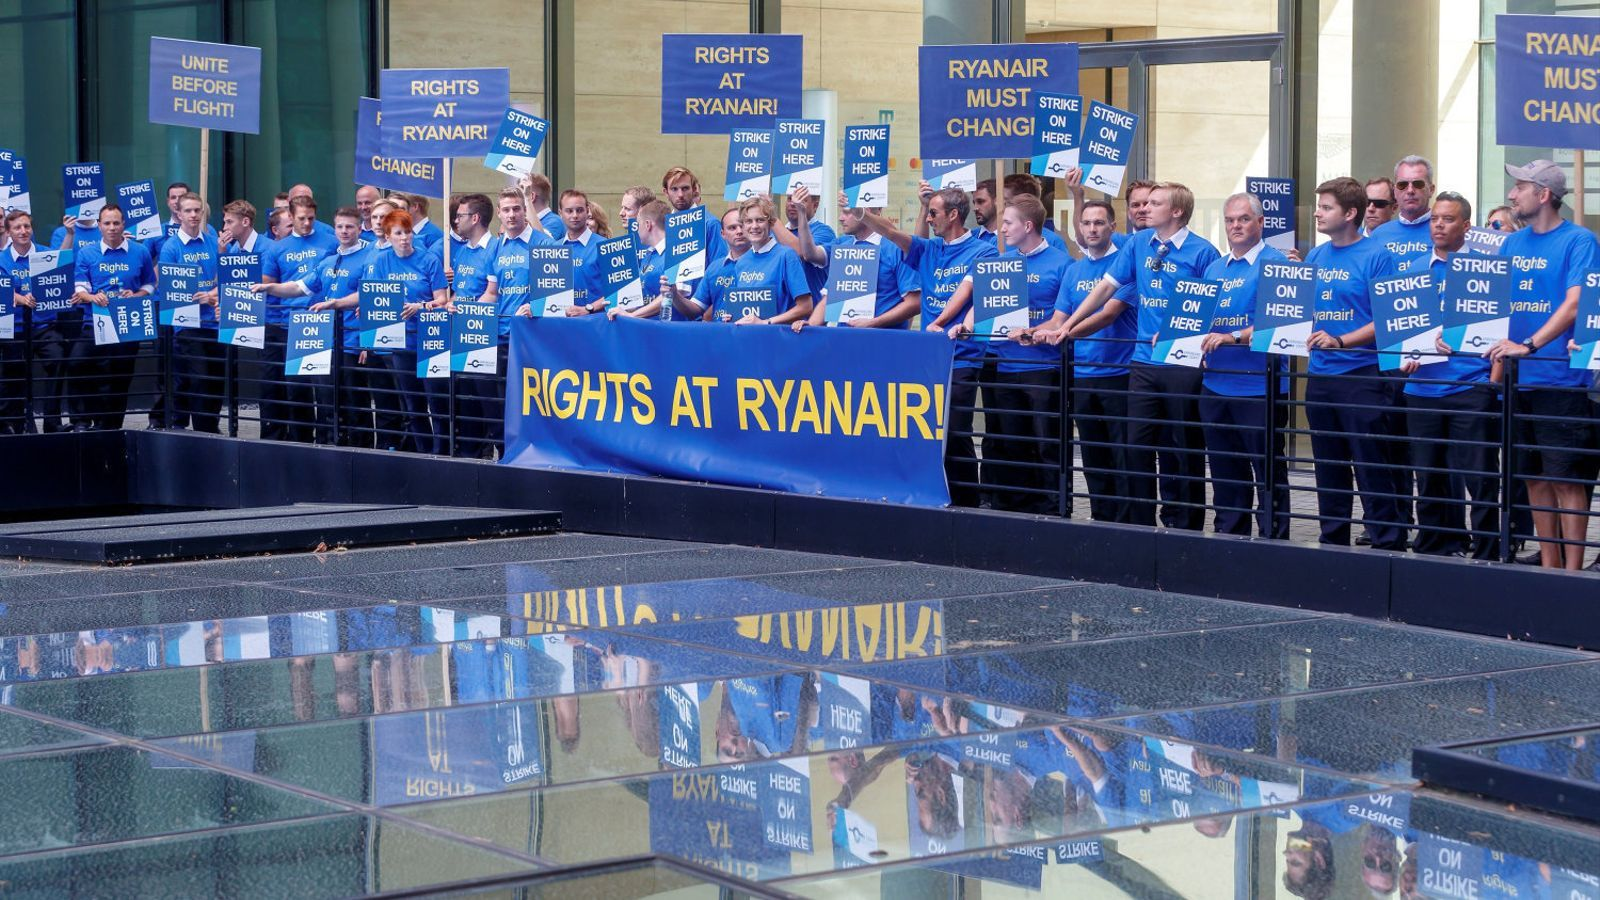 El caos laboral del model Ryanair